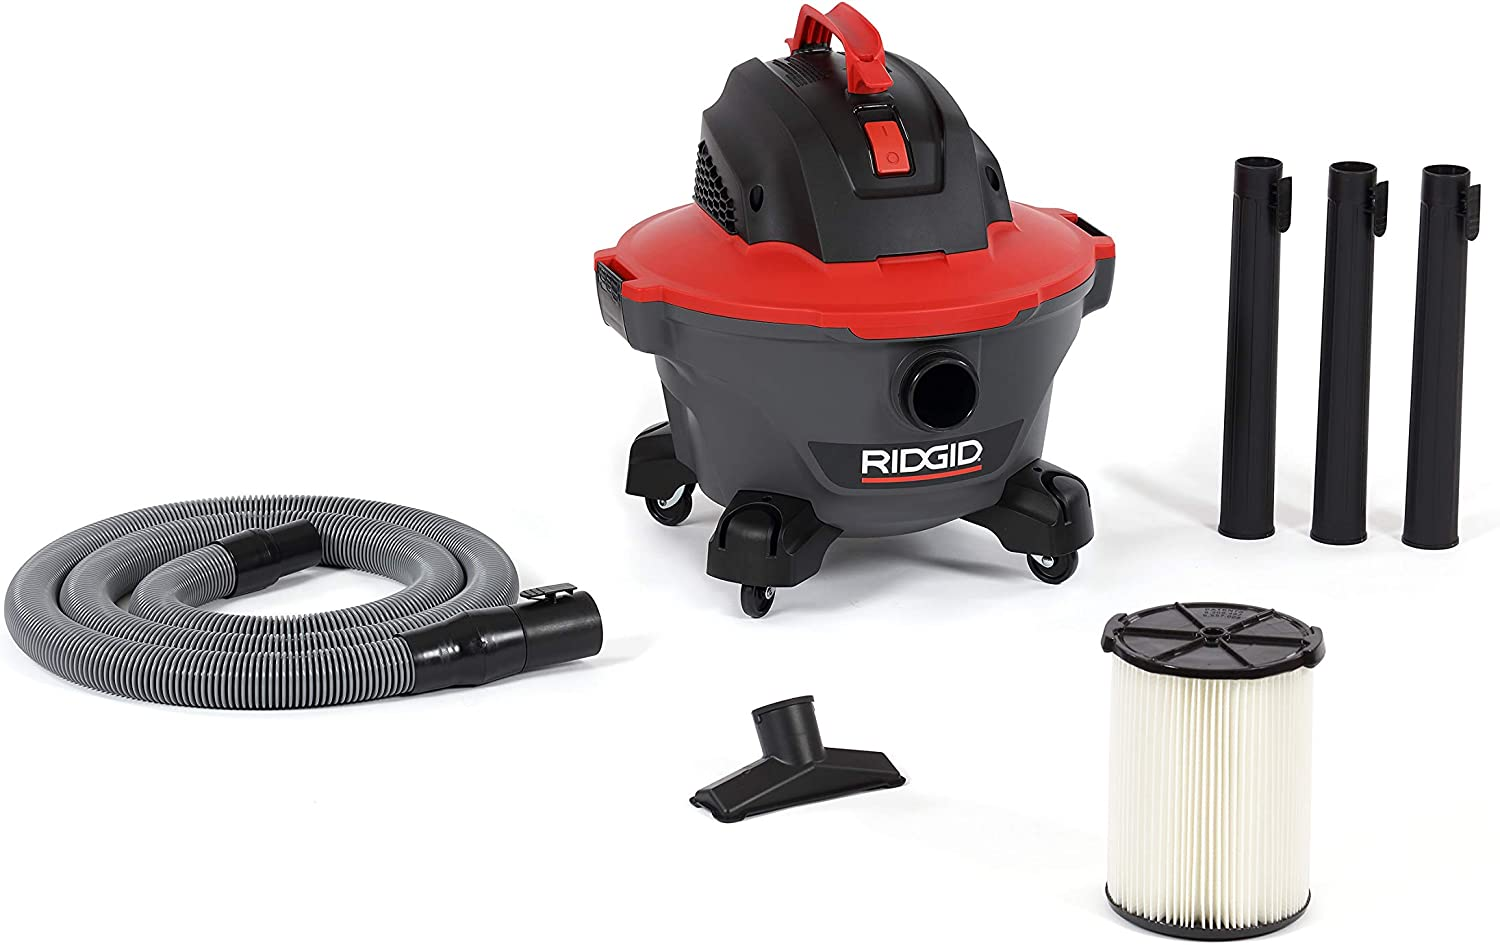 Ridgid 62698 Red 6 gallon RT0600 Wet/Dry Vacuum